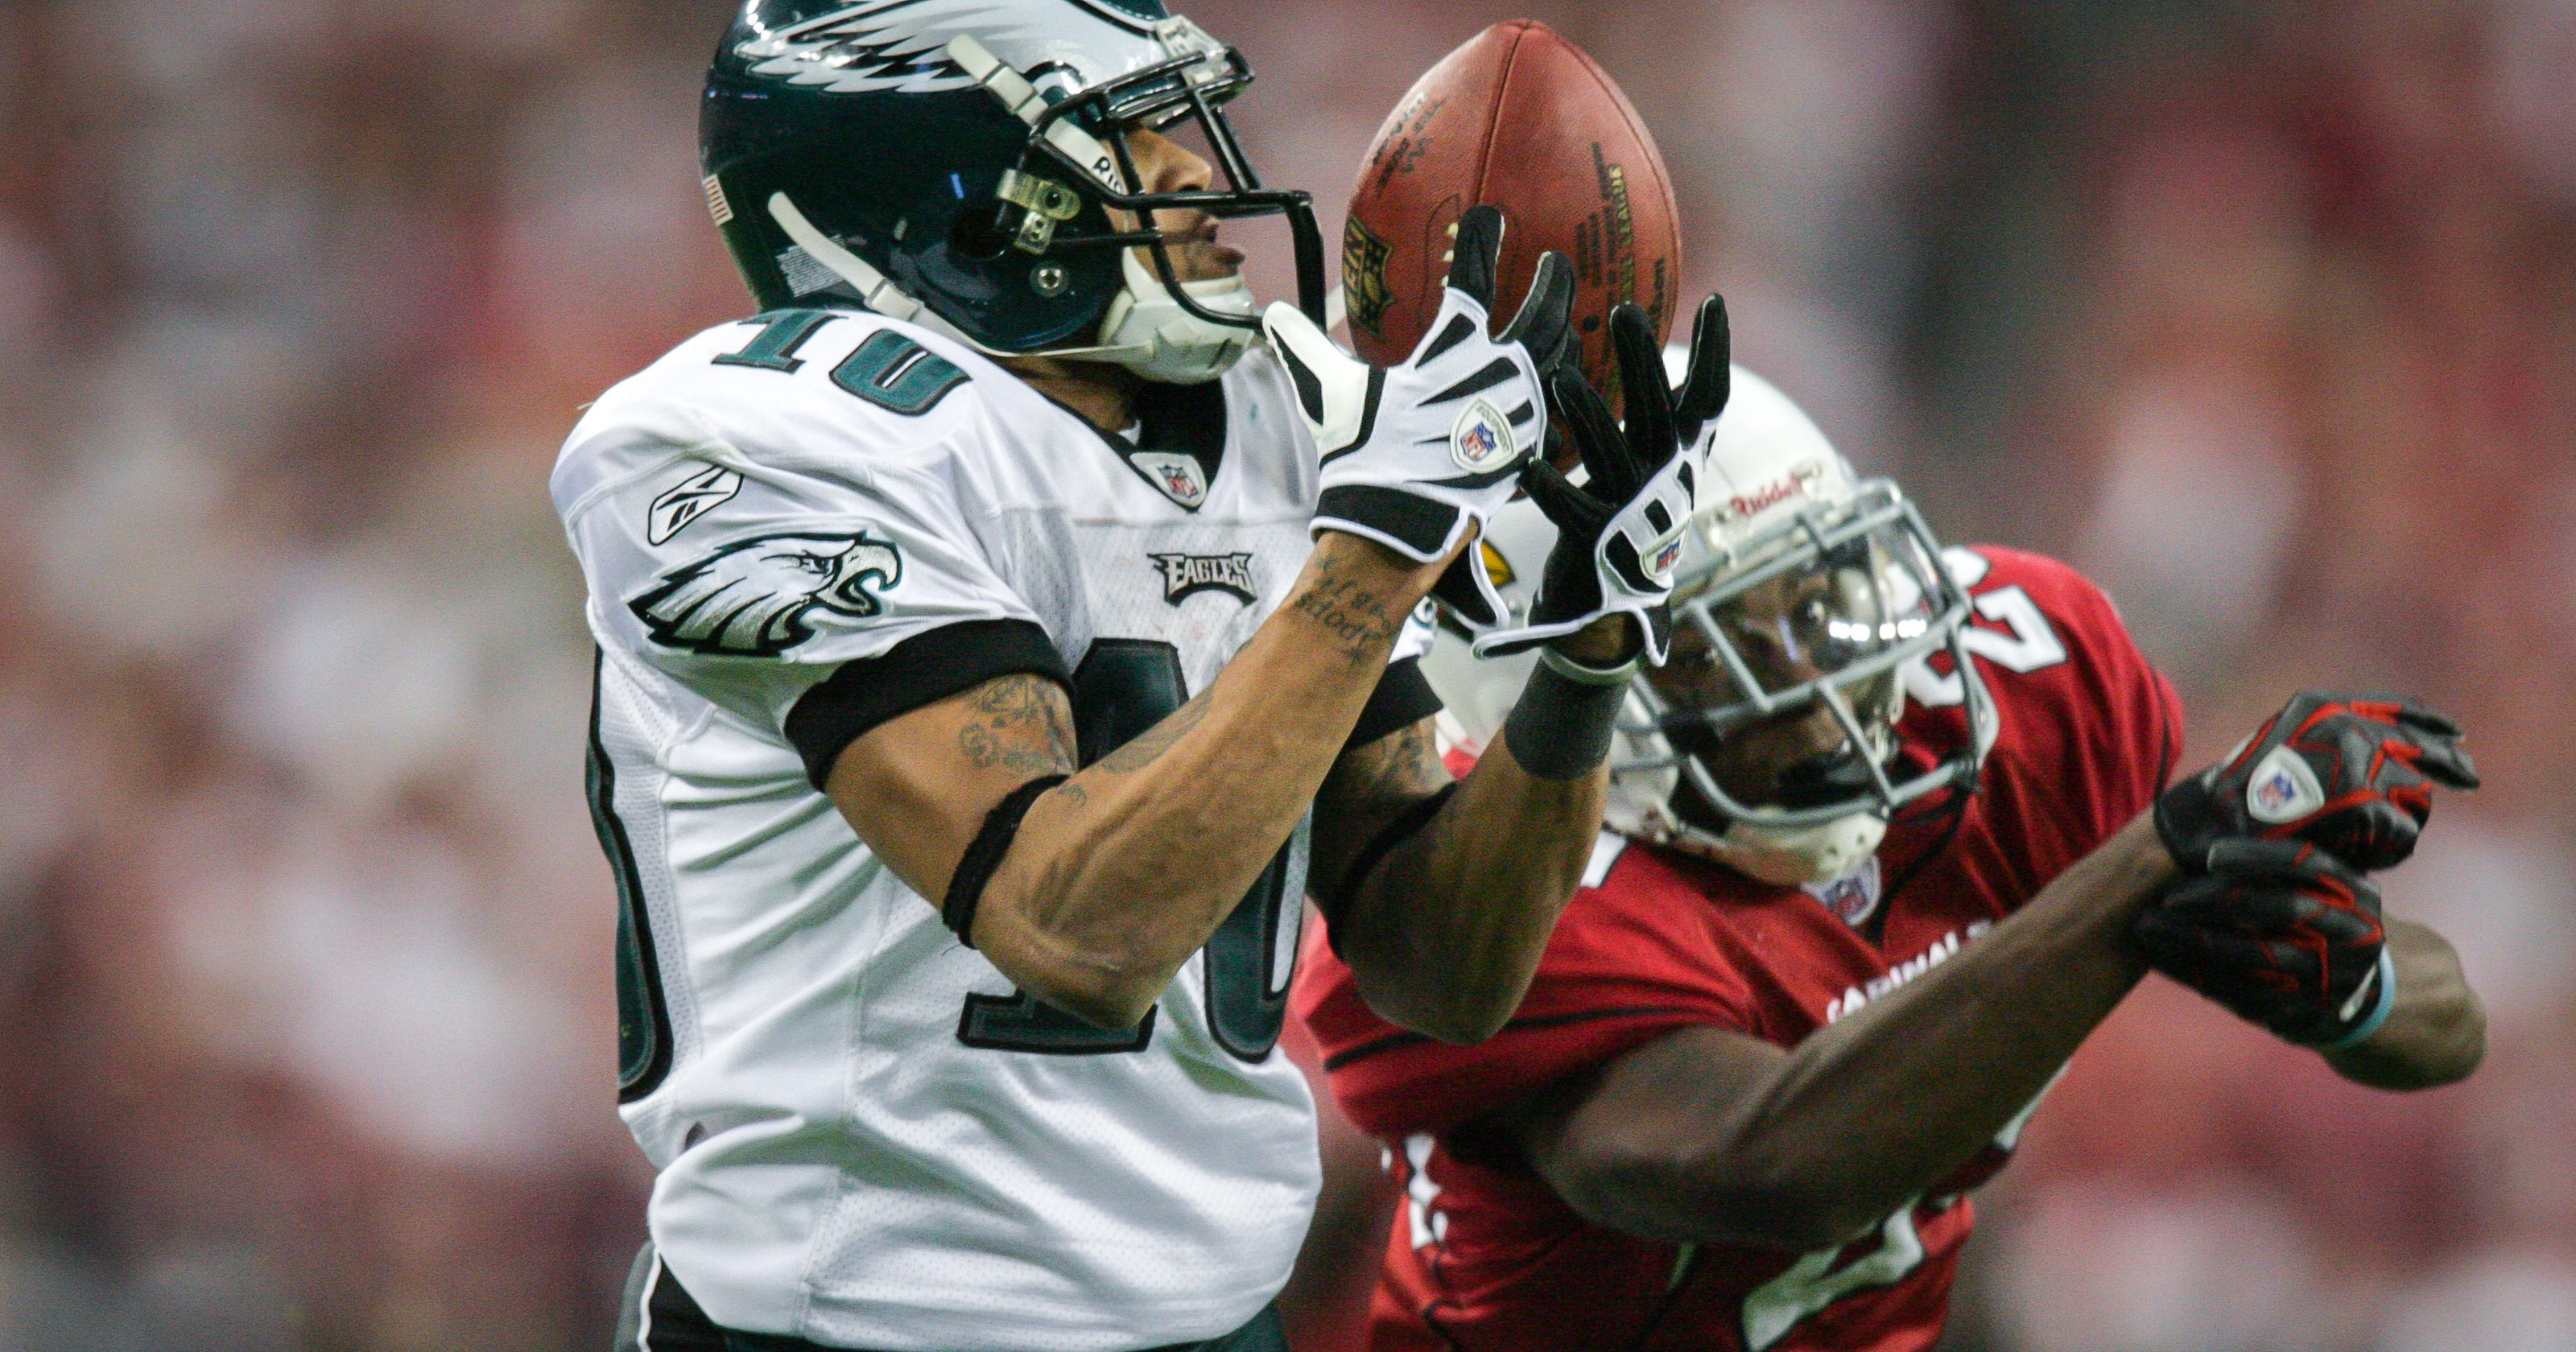 e5d854229dc NFL playoffs  Philadelphia Eagles hoping to mimic 2008 team s run as a No.  6 seed